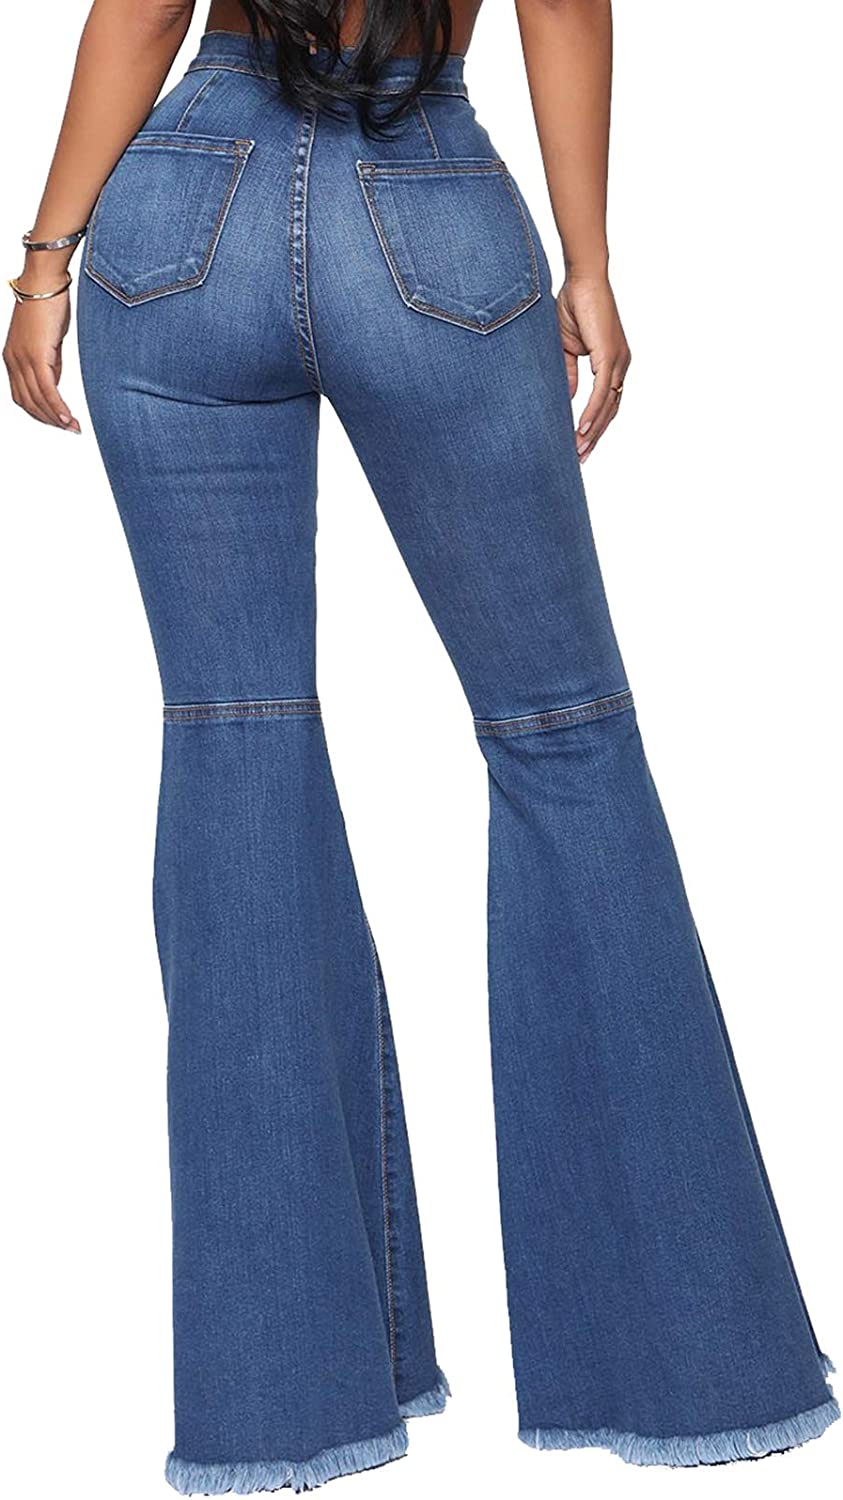 YouSexy Womens Flare Bell Bottom Jeans Knee Ripped Fitted Destroyed Flare Denim Pants